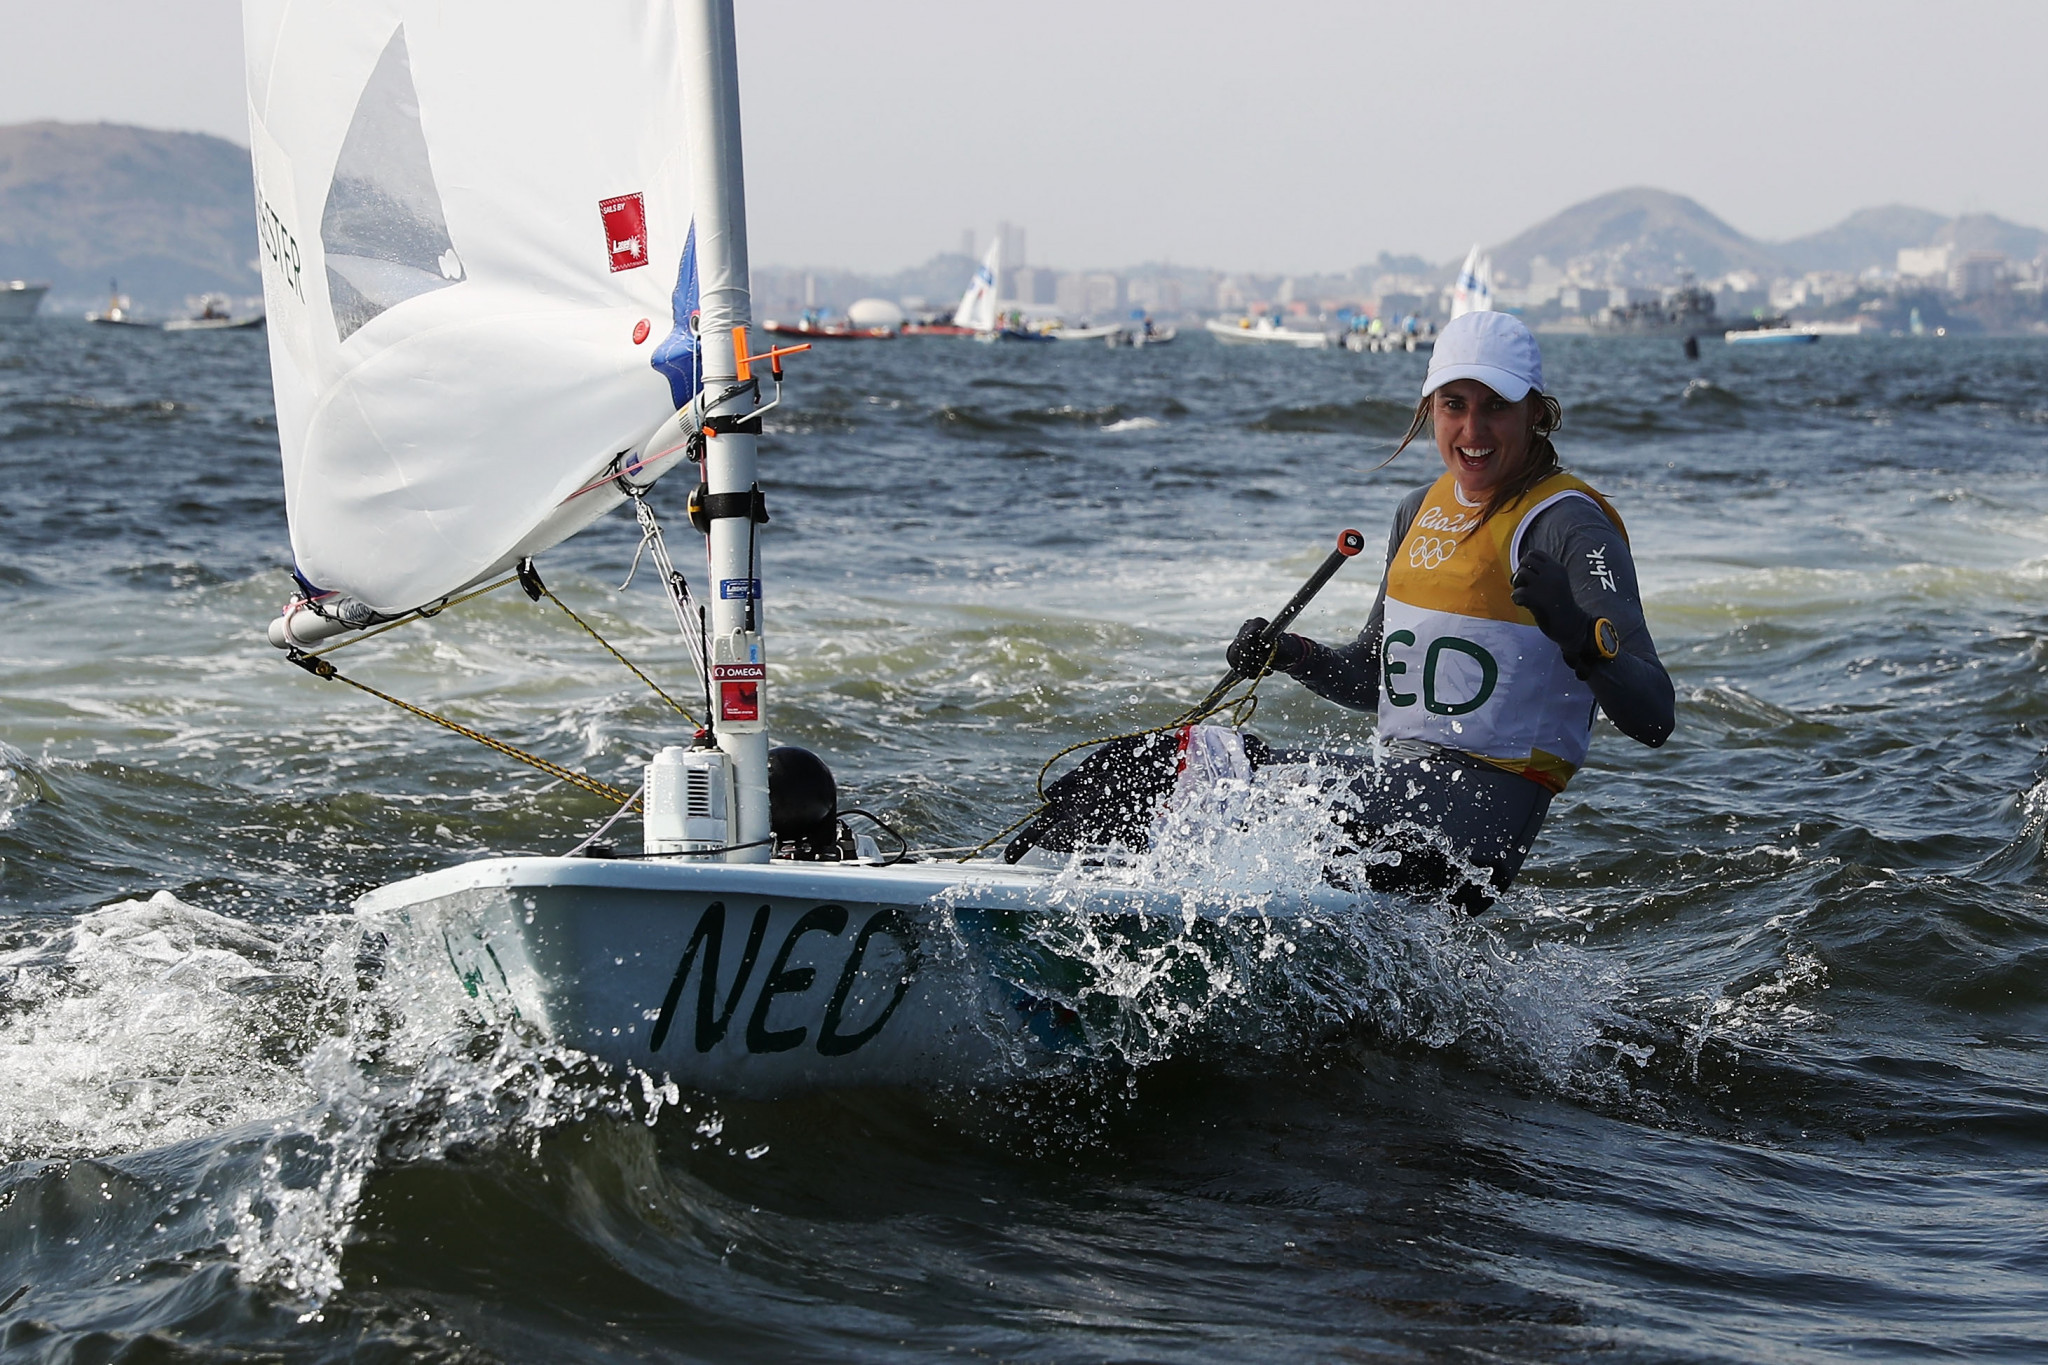 Marit Bouwmeester claimed her fourth European Laser Championships title ©Getty Images